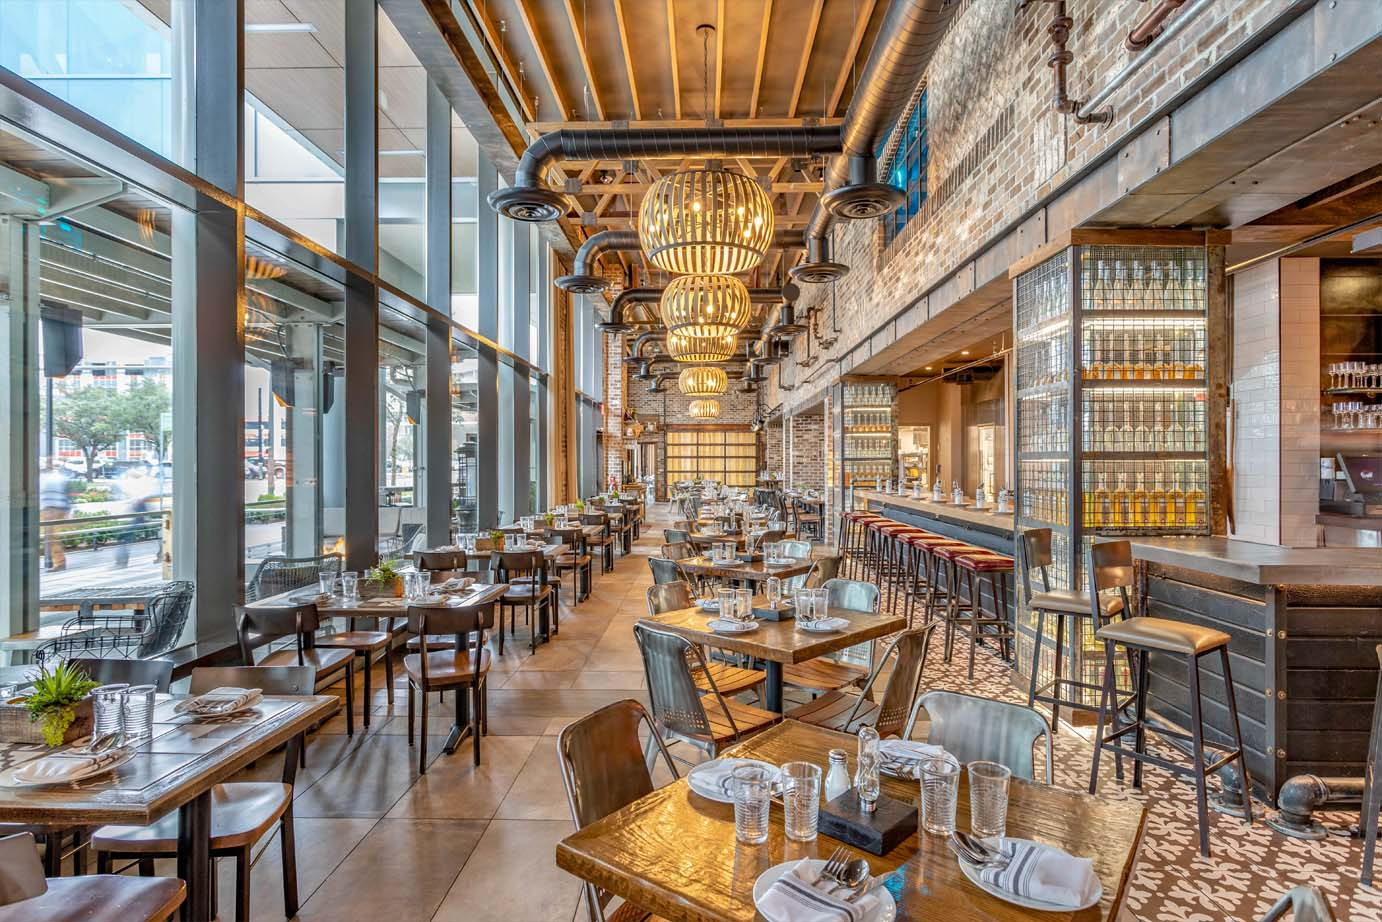 Rustic and Upscale Restaurant Dining Room